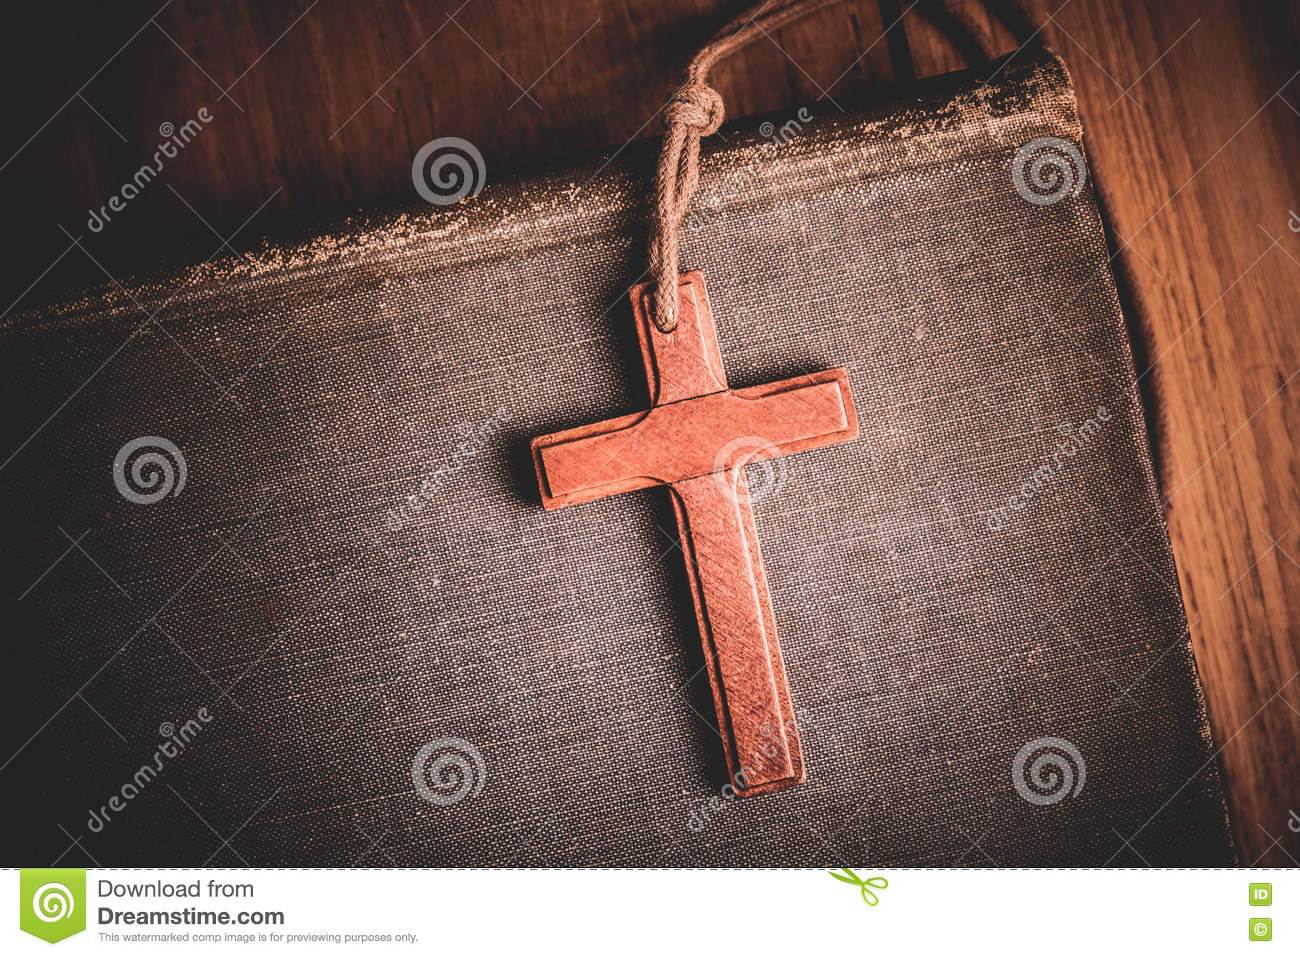 Image of wooden cross on bible background